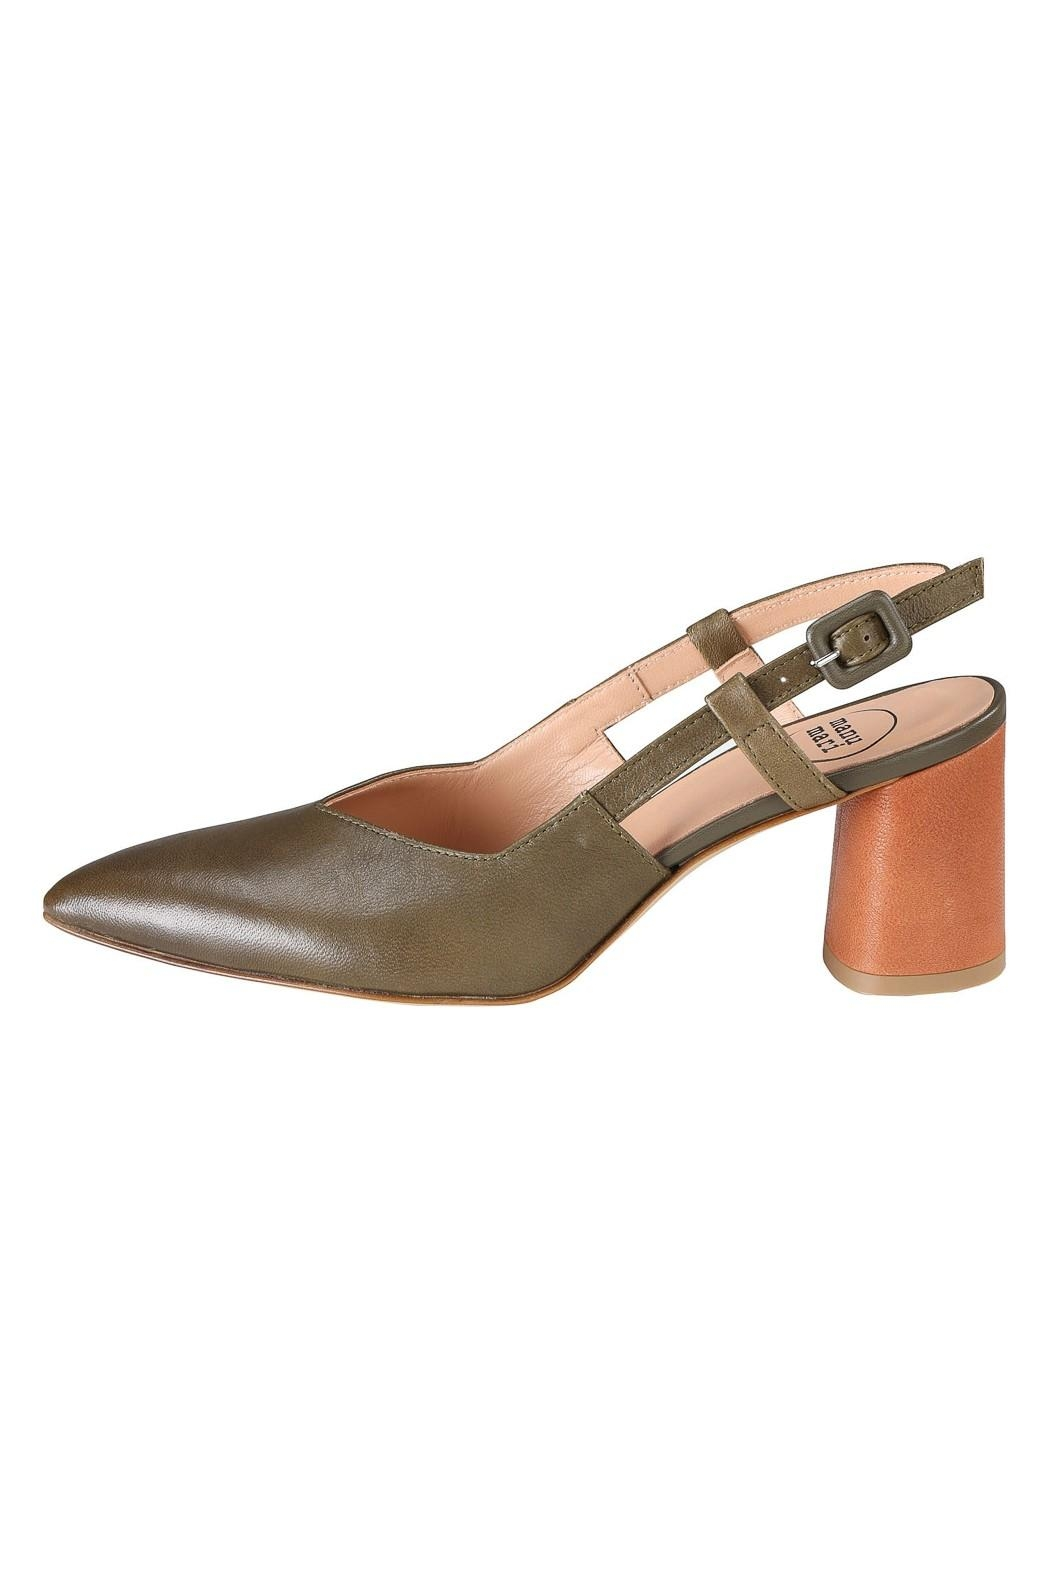 Pascucci Khaki Brown Slingbacks - Front Cropped Image